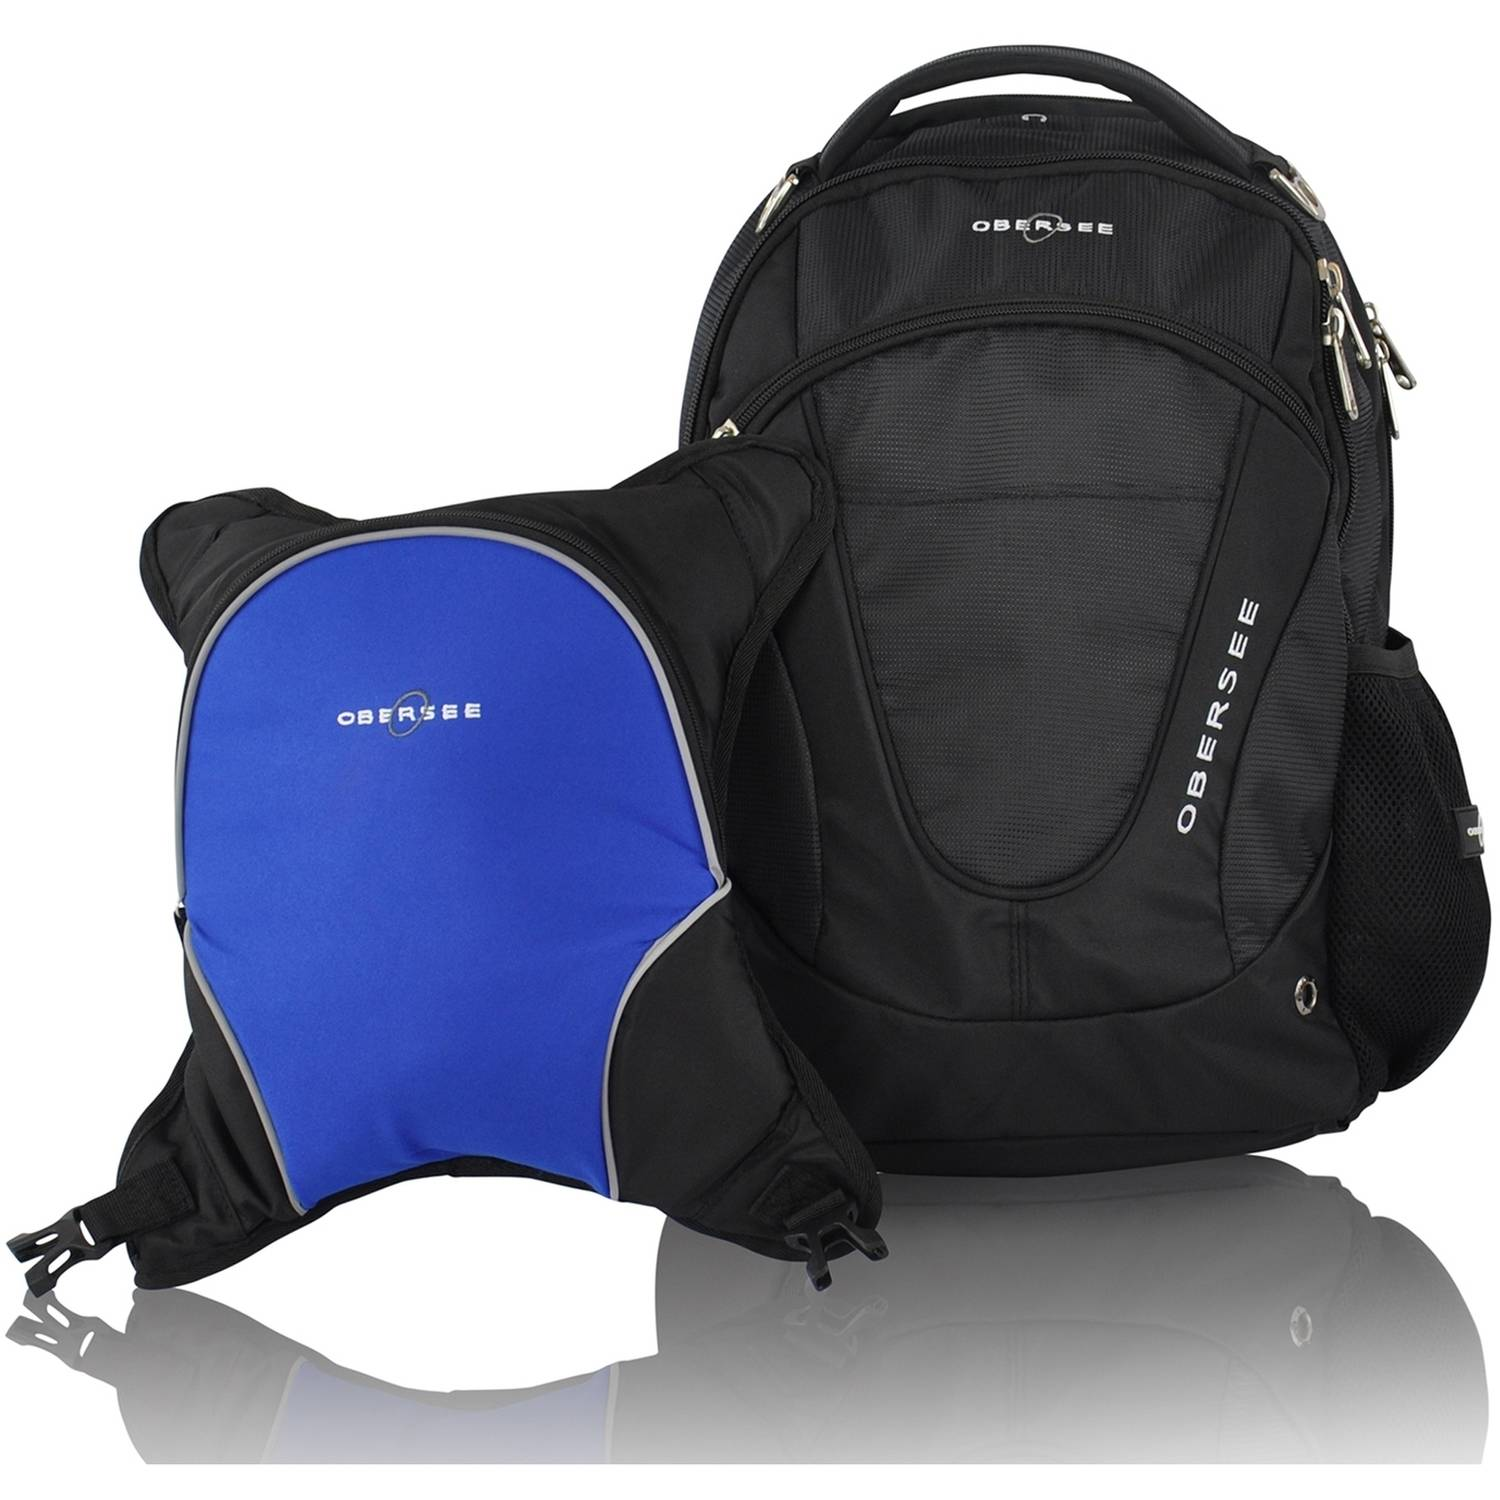 Obersee Oslo Diaper Bag Backpack and Cooler, Black Royal Blue by Obersee